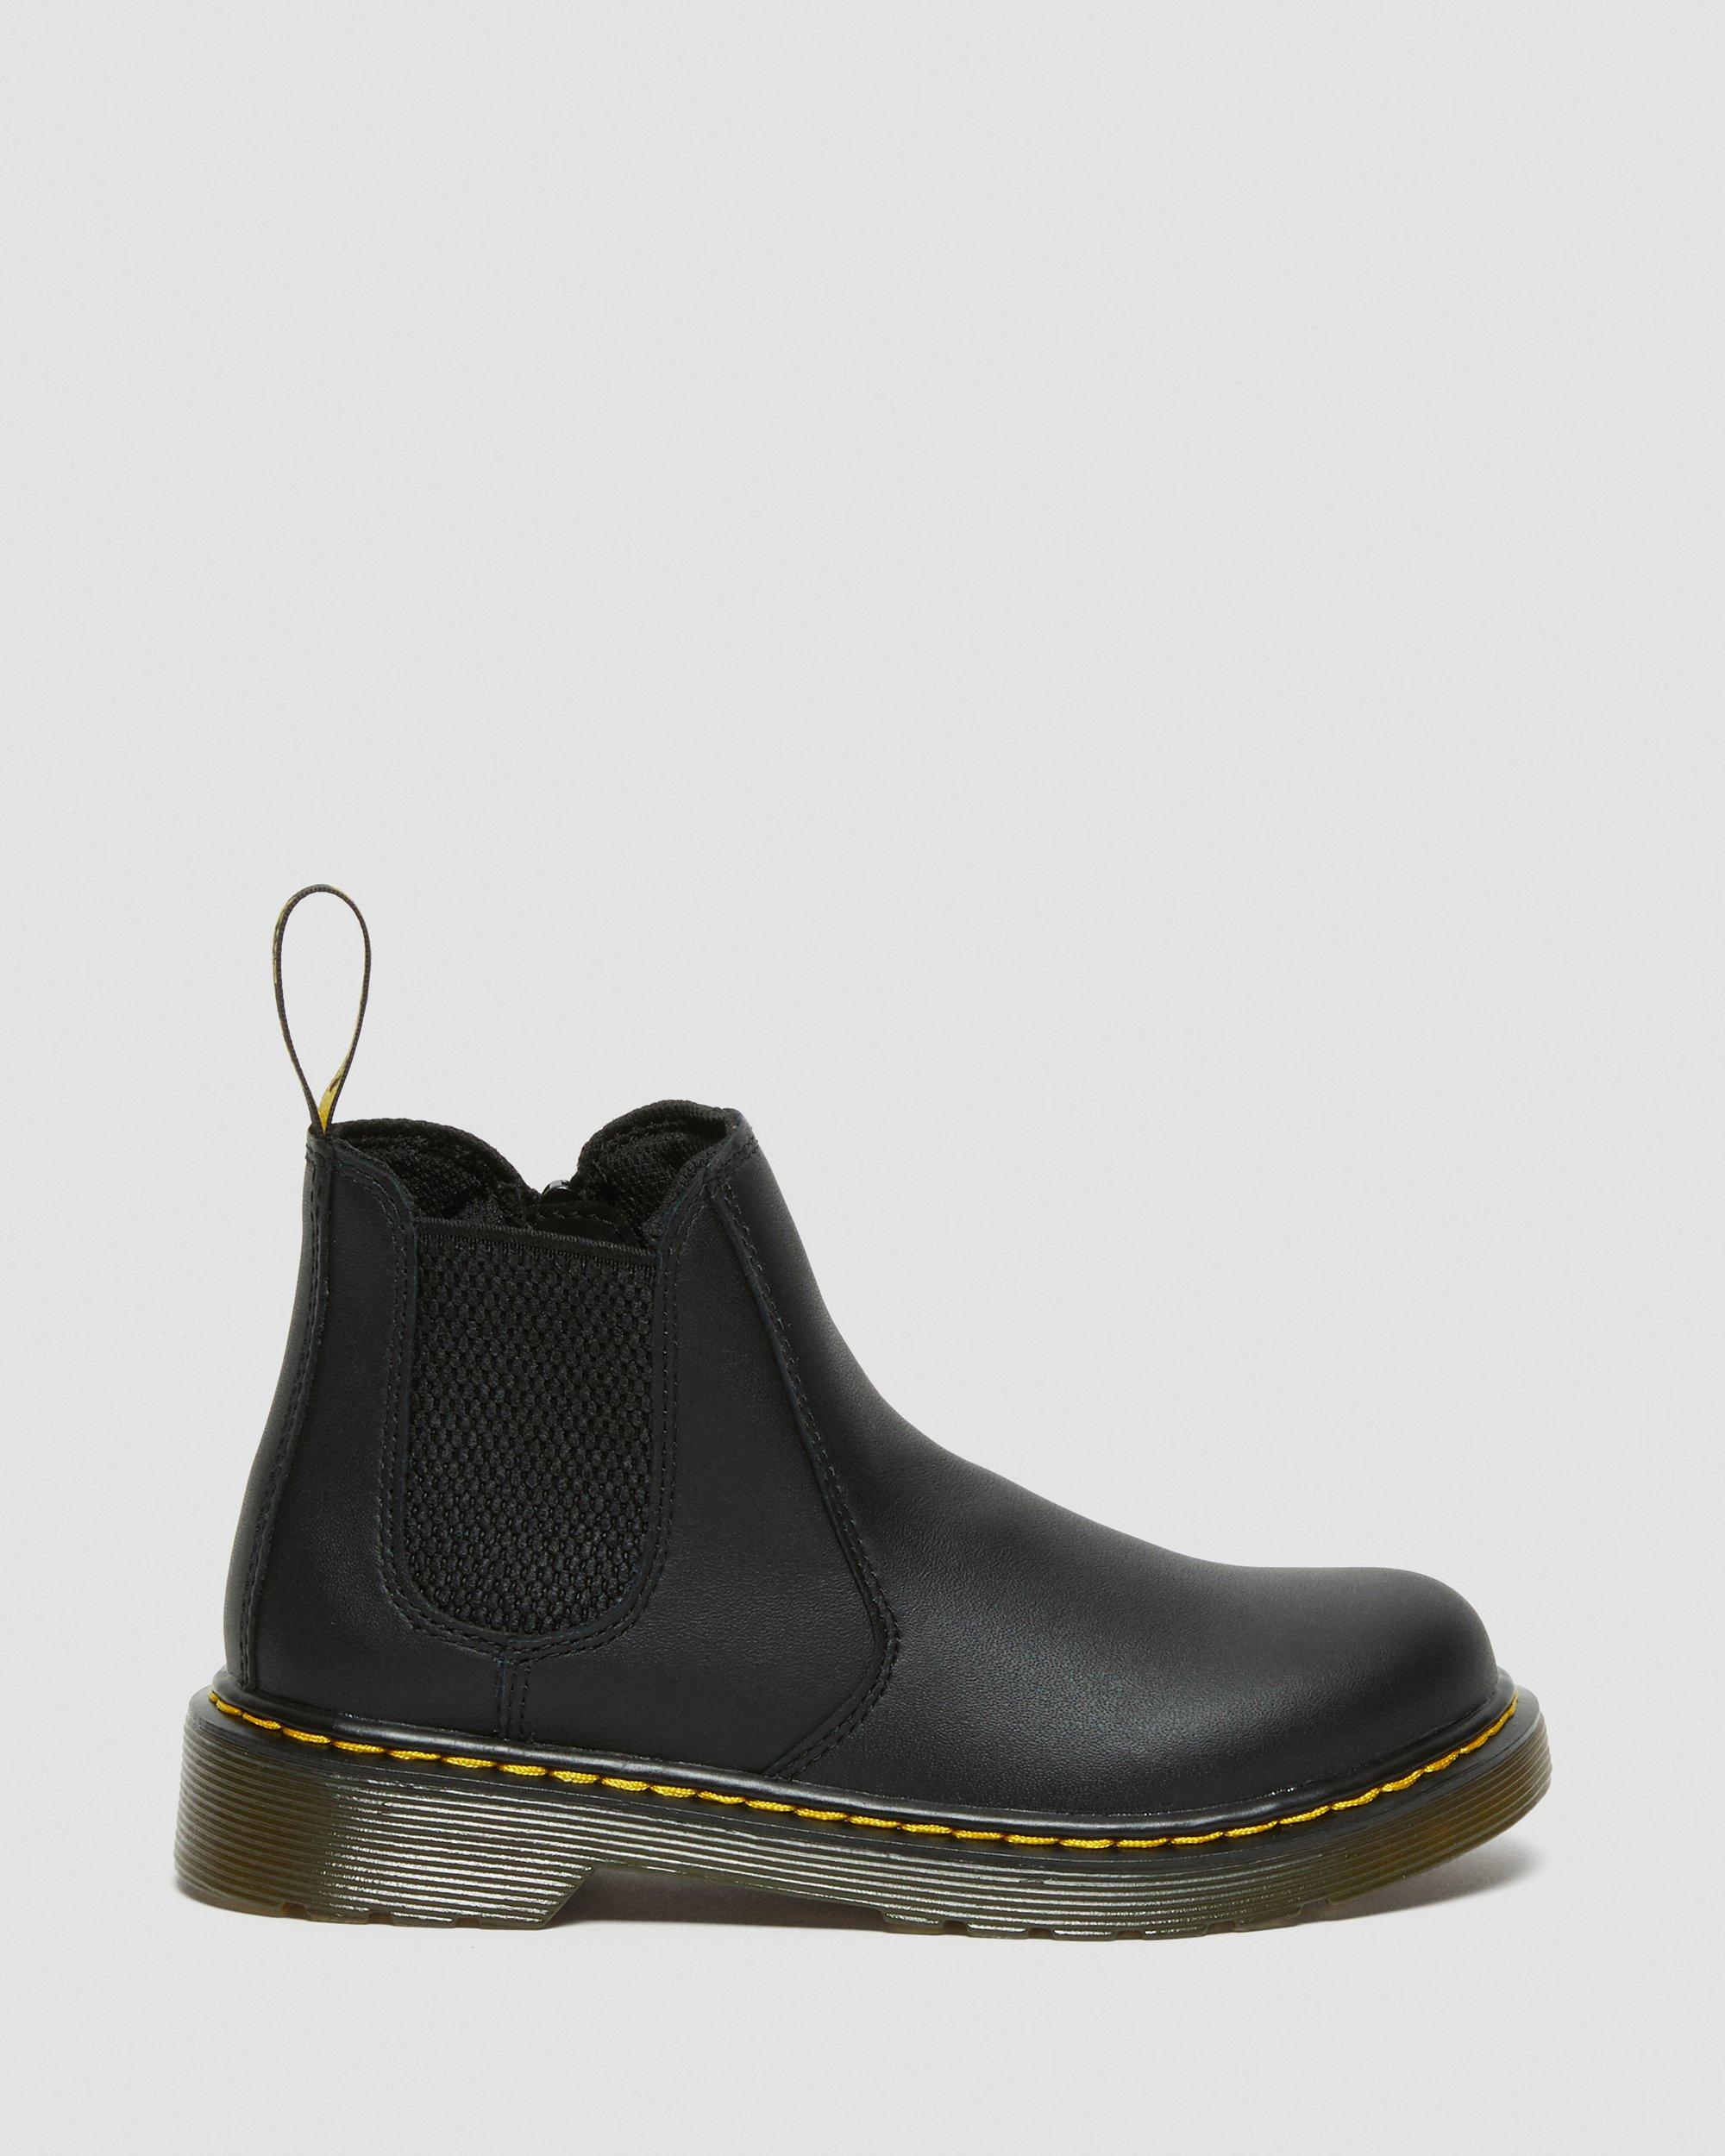 2976 JUNIOR LEATHER CHELSEA BOOTS   Dr